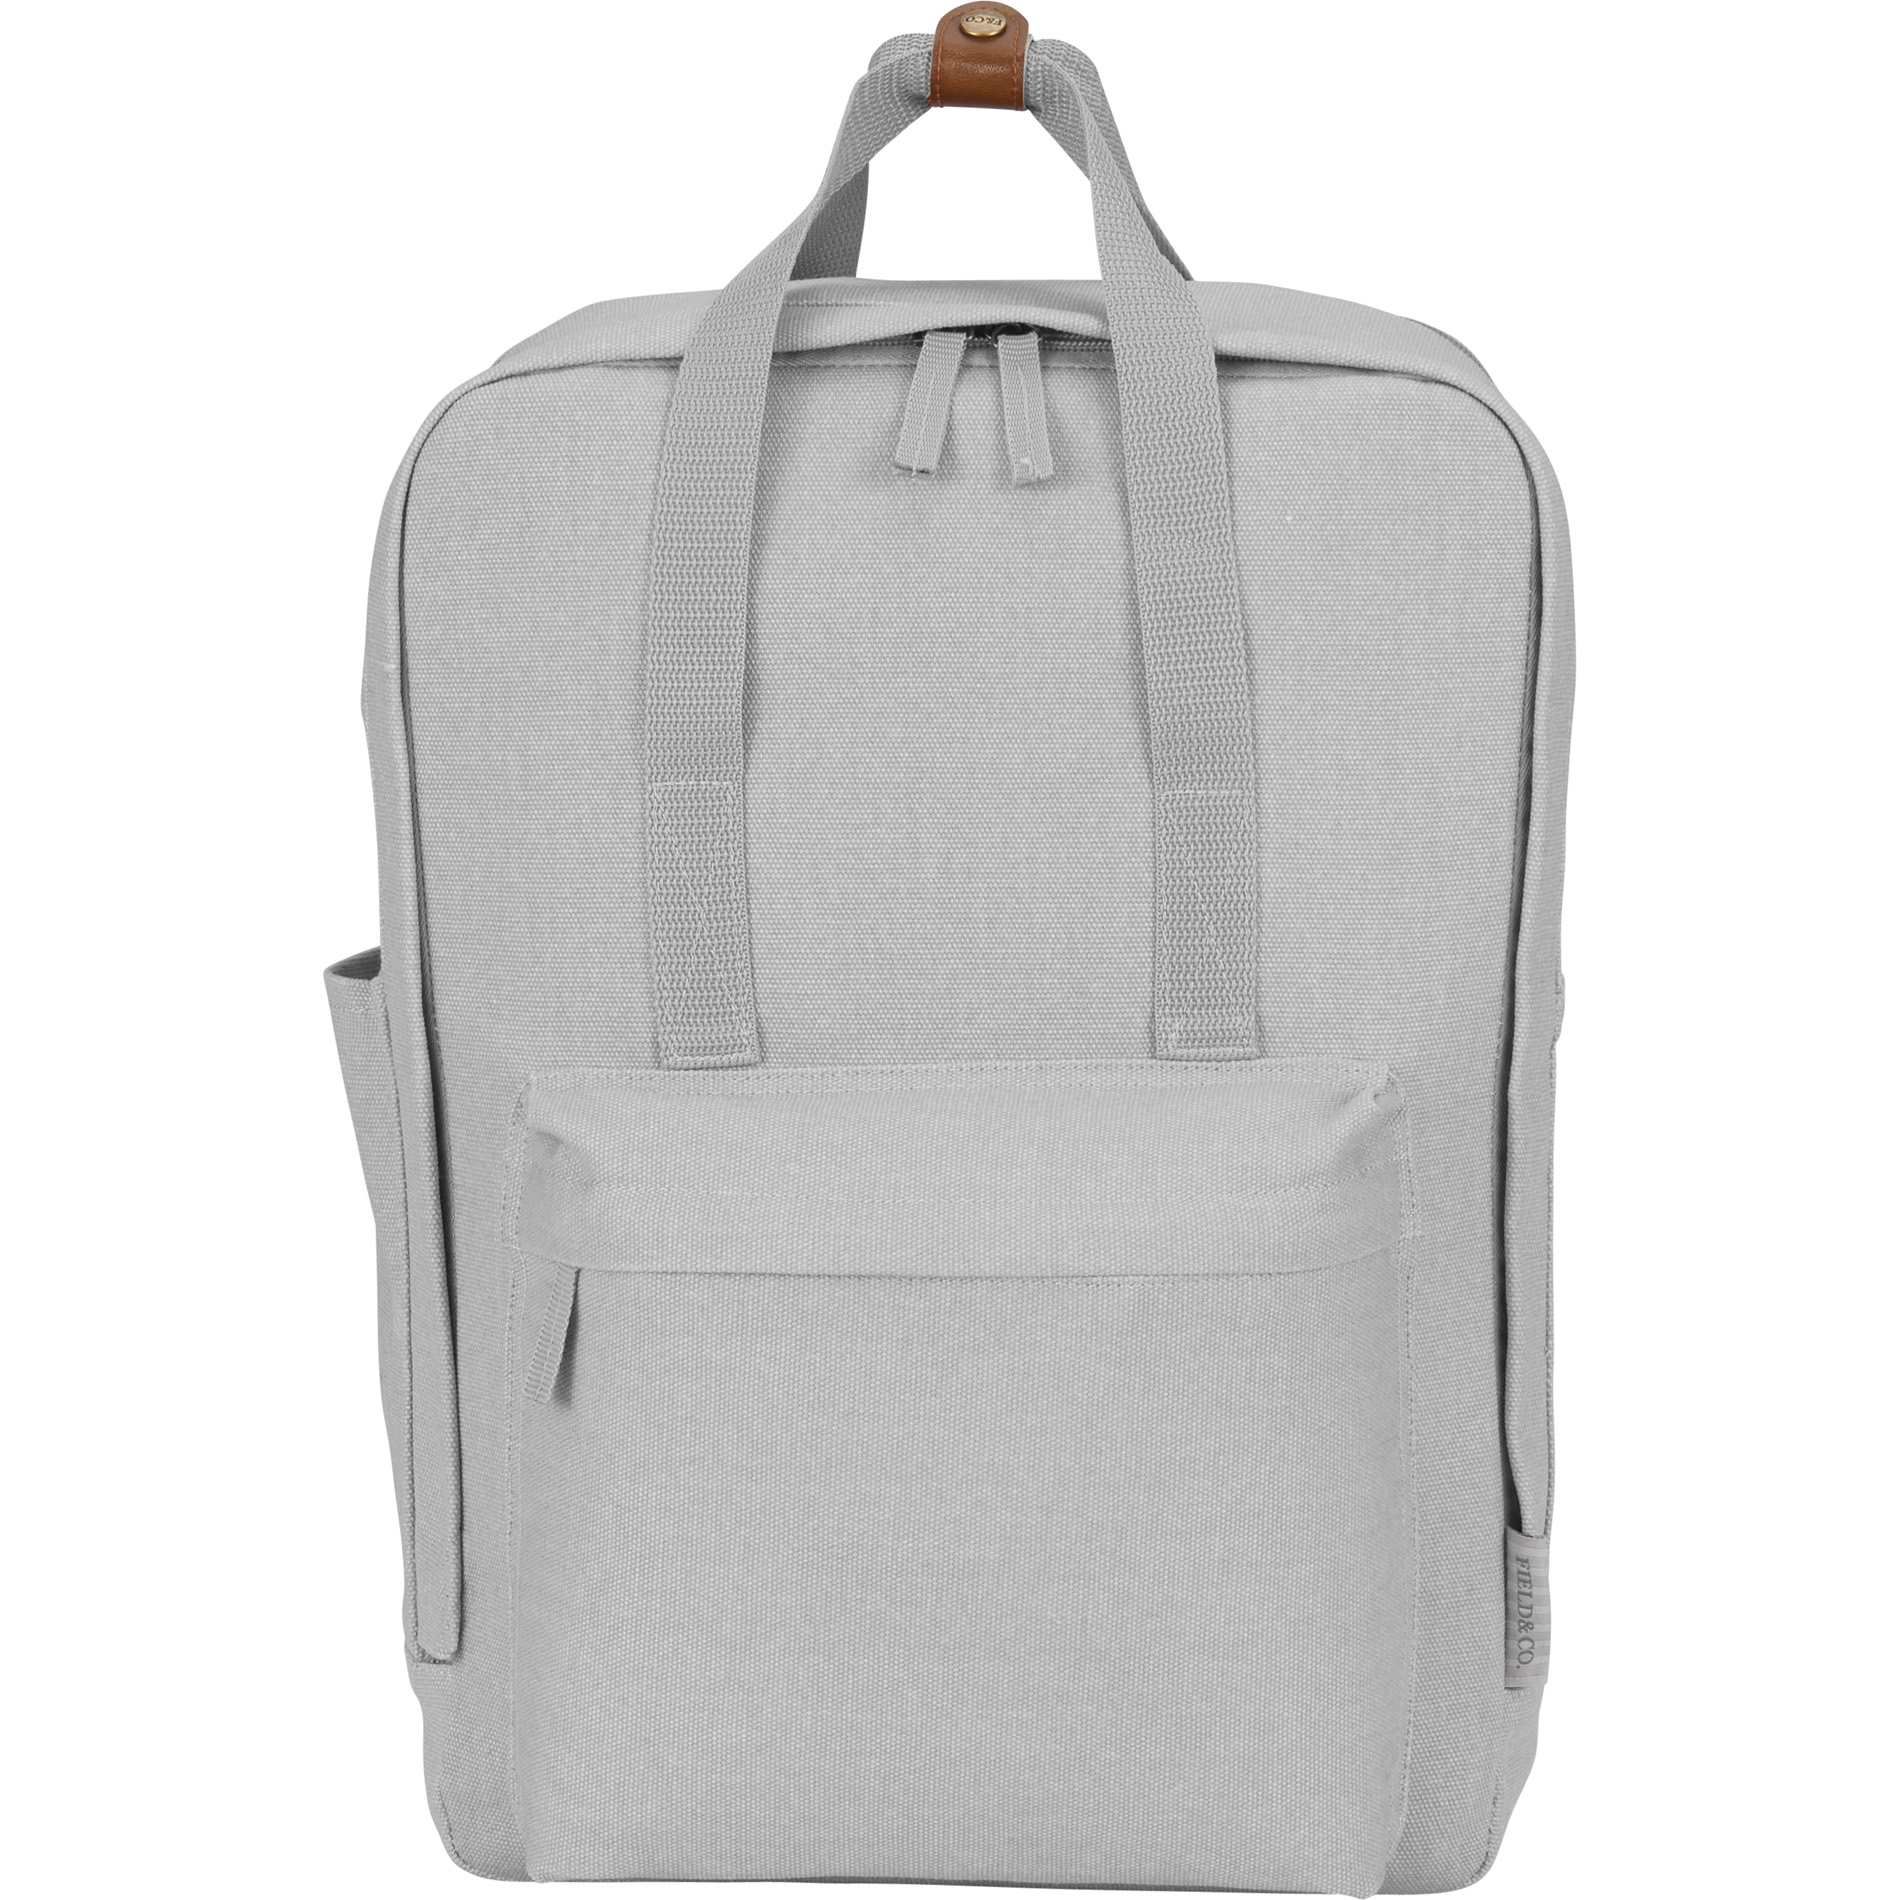 "Field & Co 7950-28 - Book 15"" Computer Backpack"